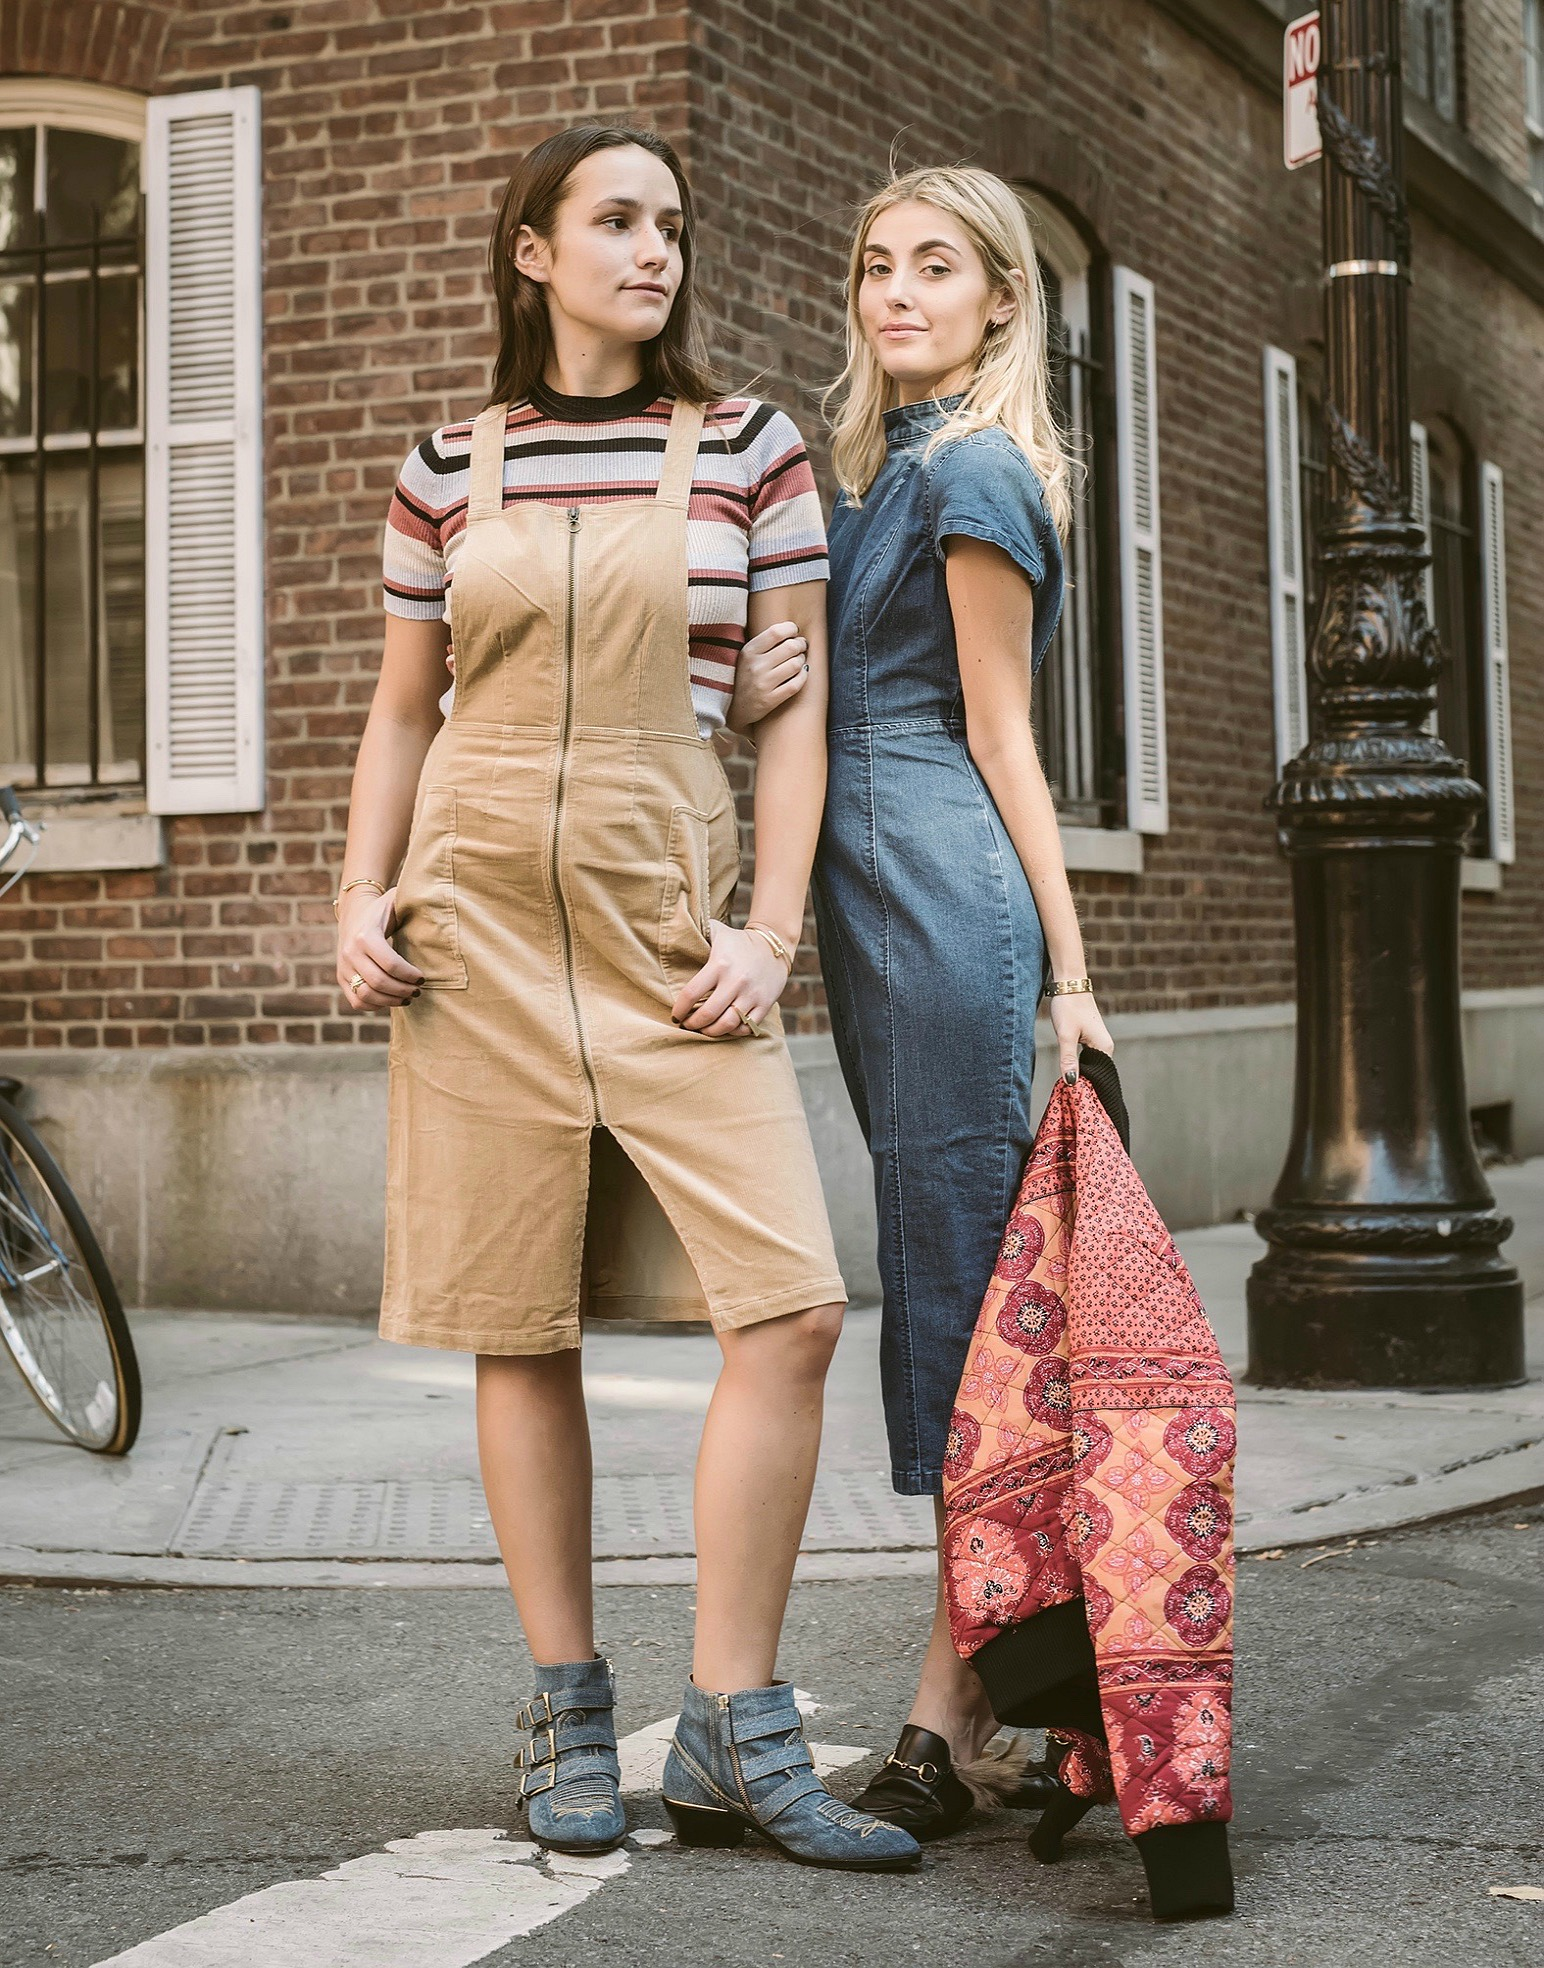 SOPHIE AND CHARLOTTE BICKLEY YIN 2MY YANG FASHION BLOGGERS FOR MINKPINK